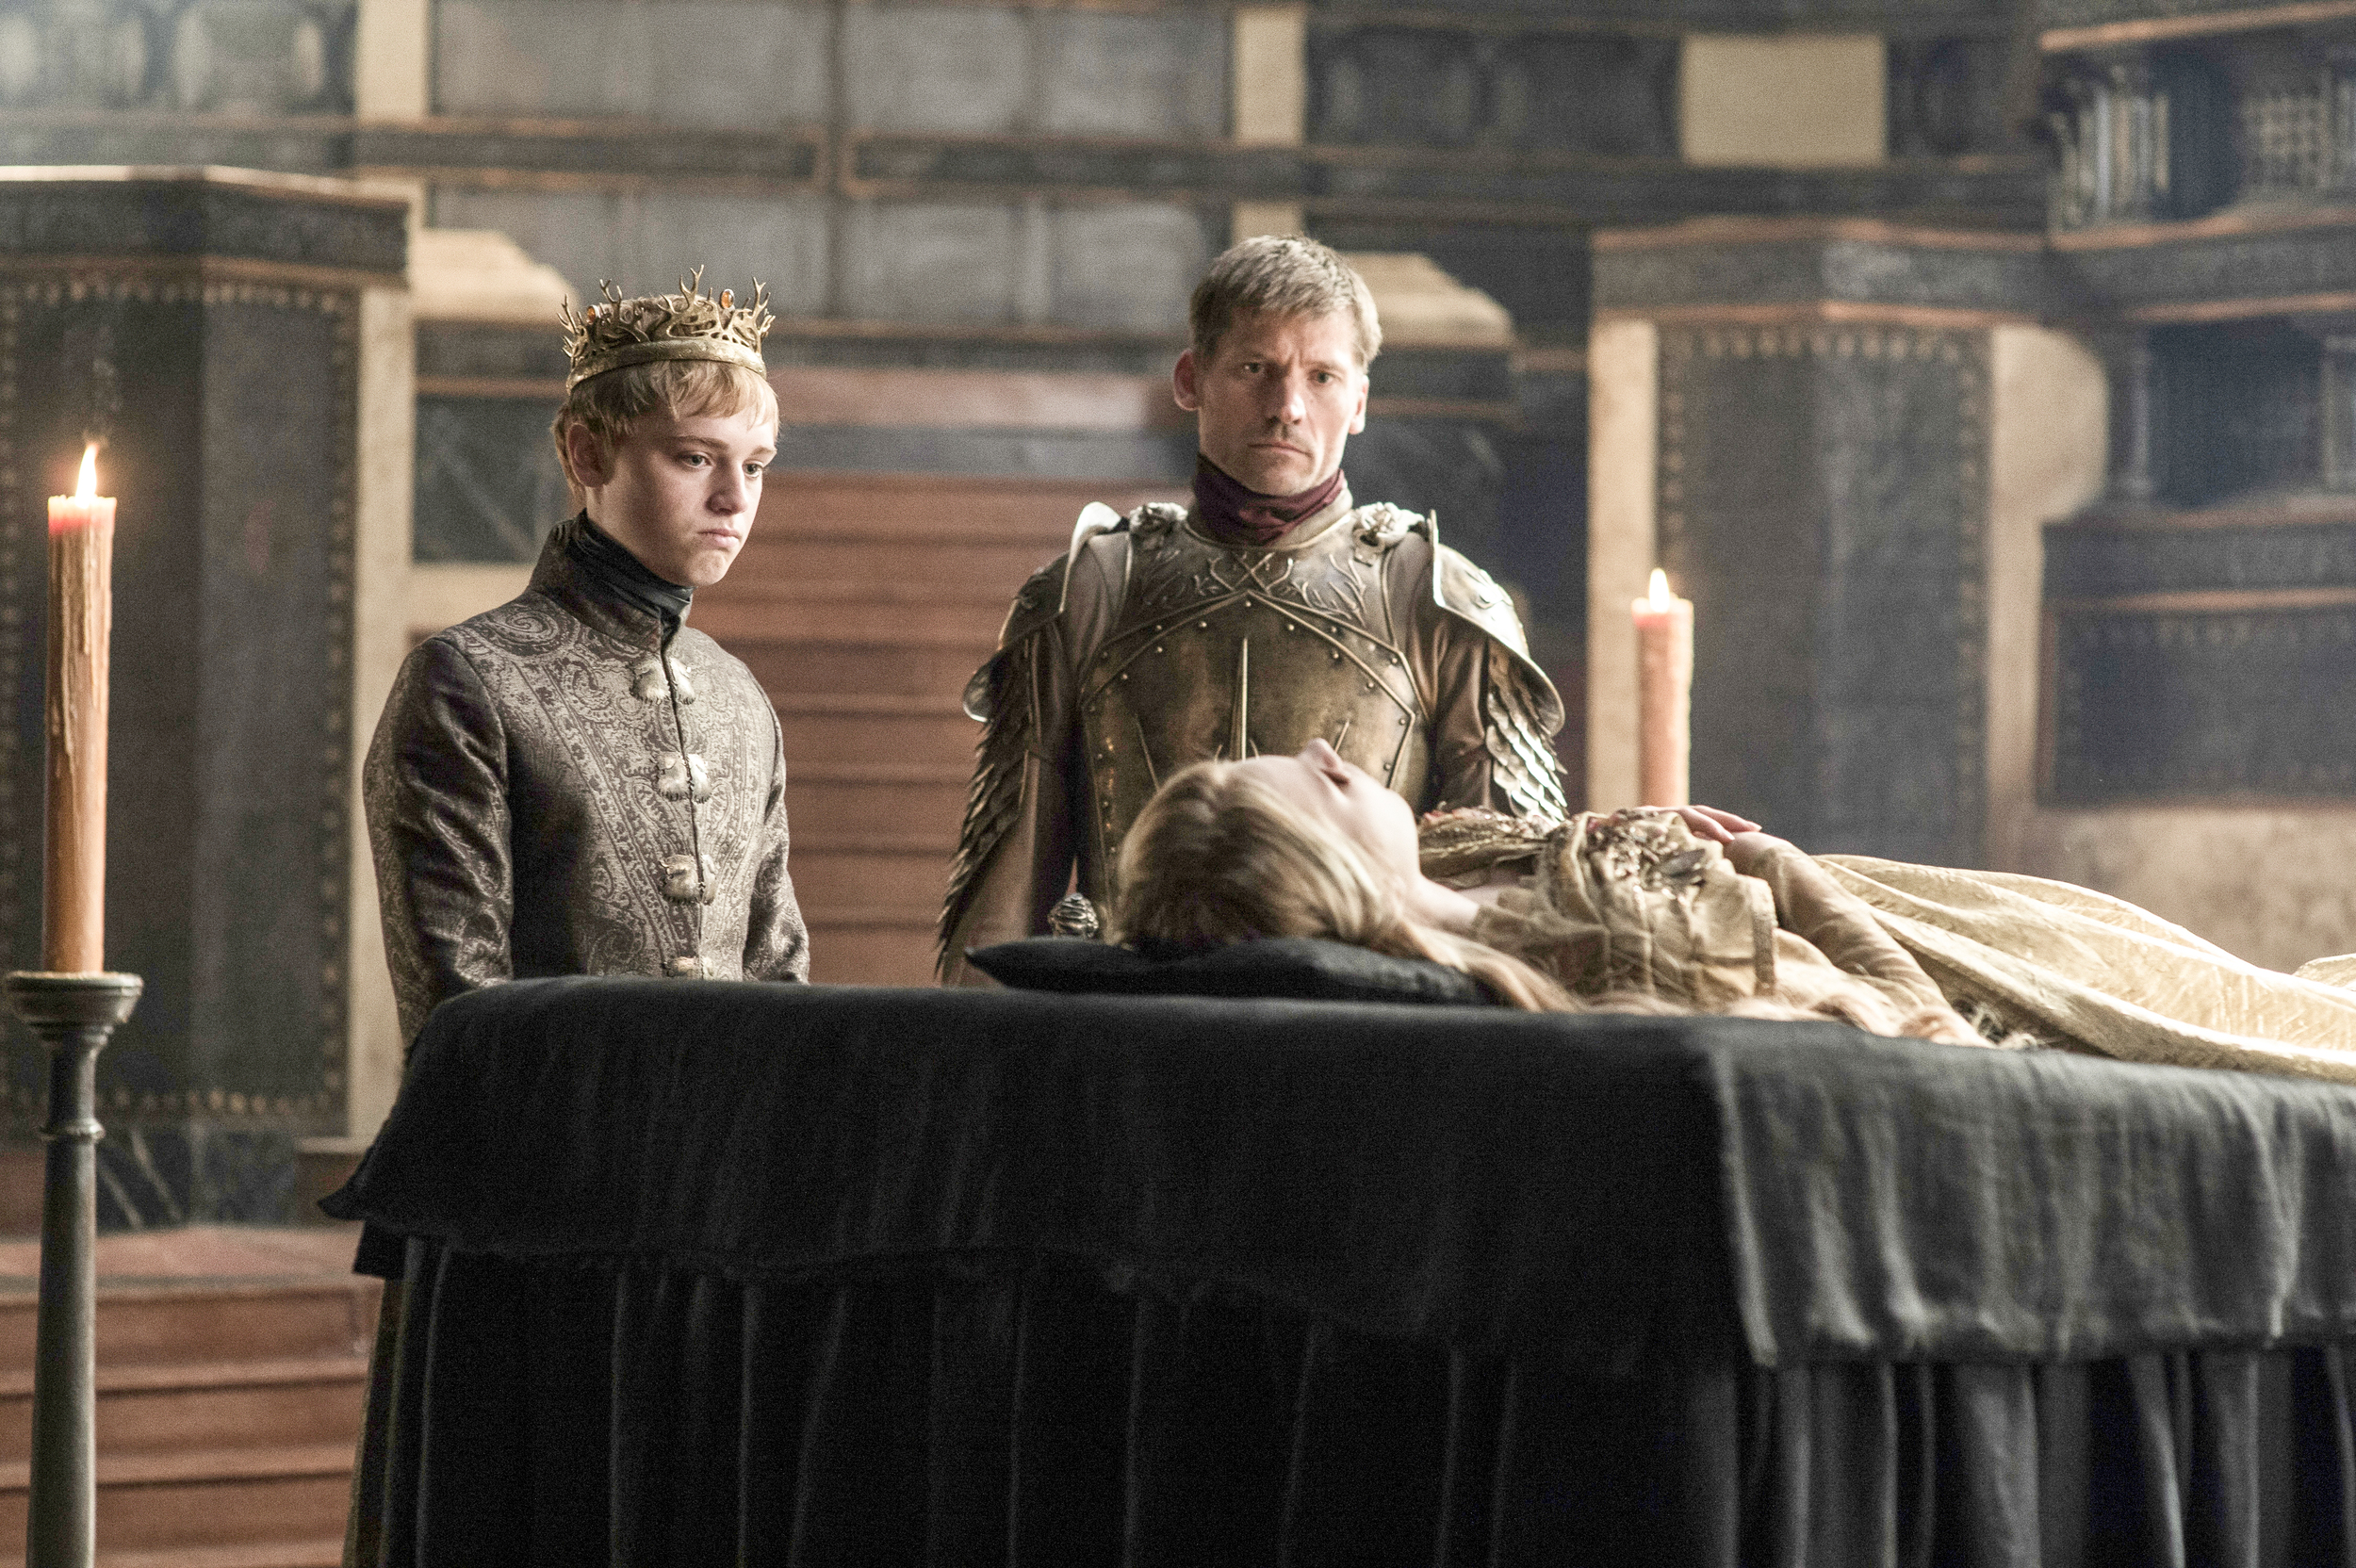 game of thrones season 6 photos, tommen baratheon, jaime lannister, myrcella funeral